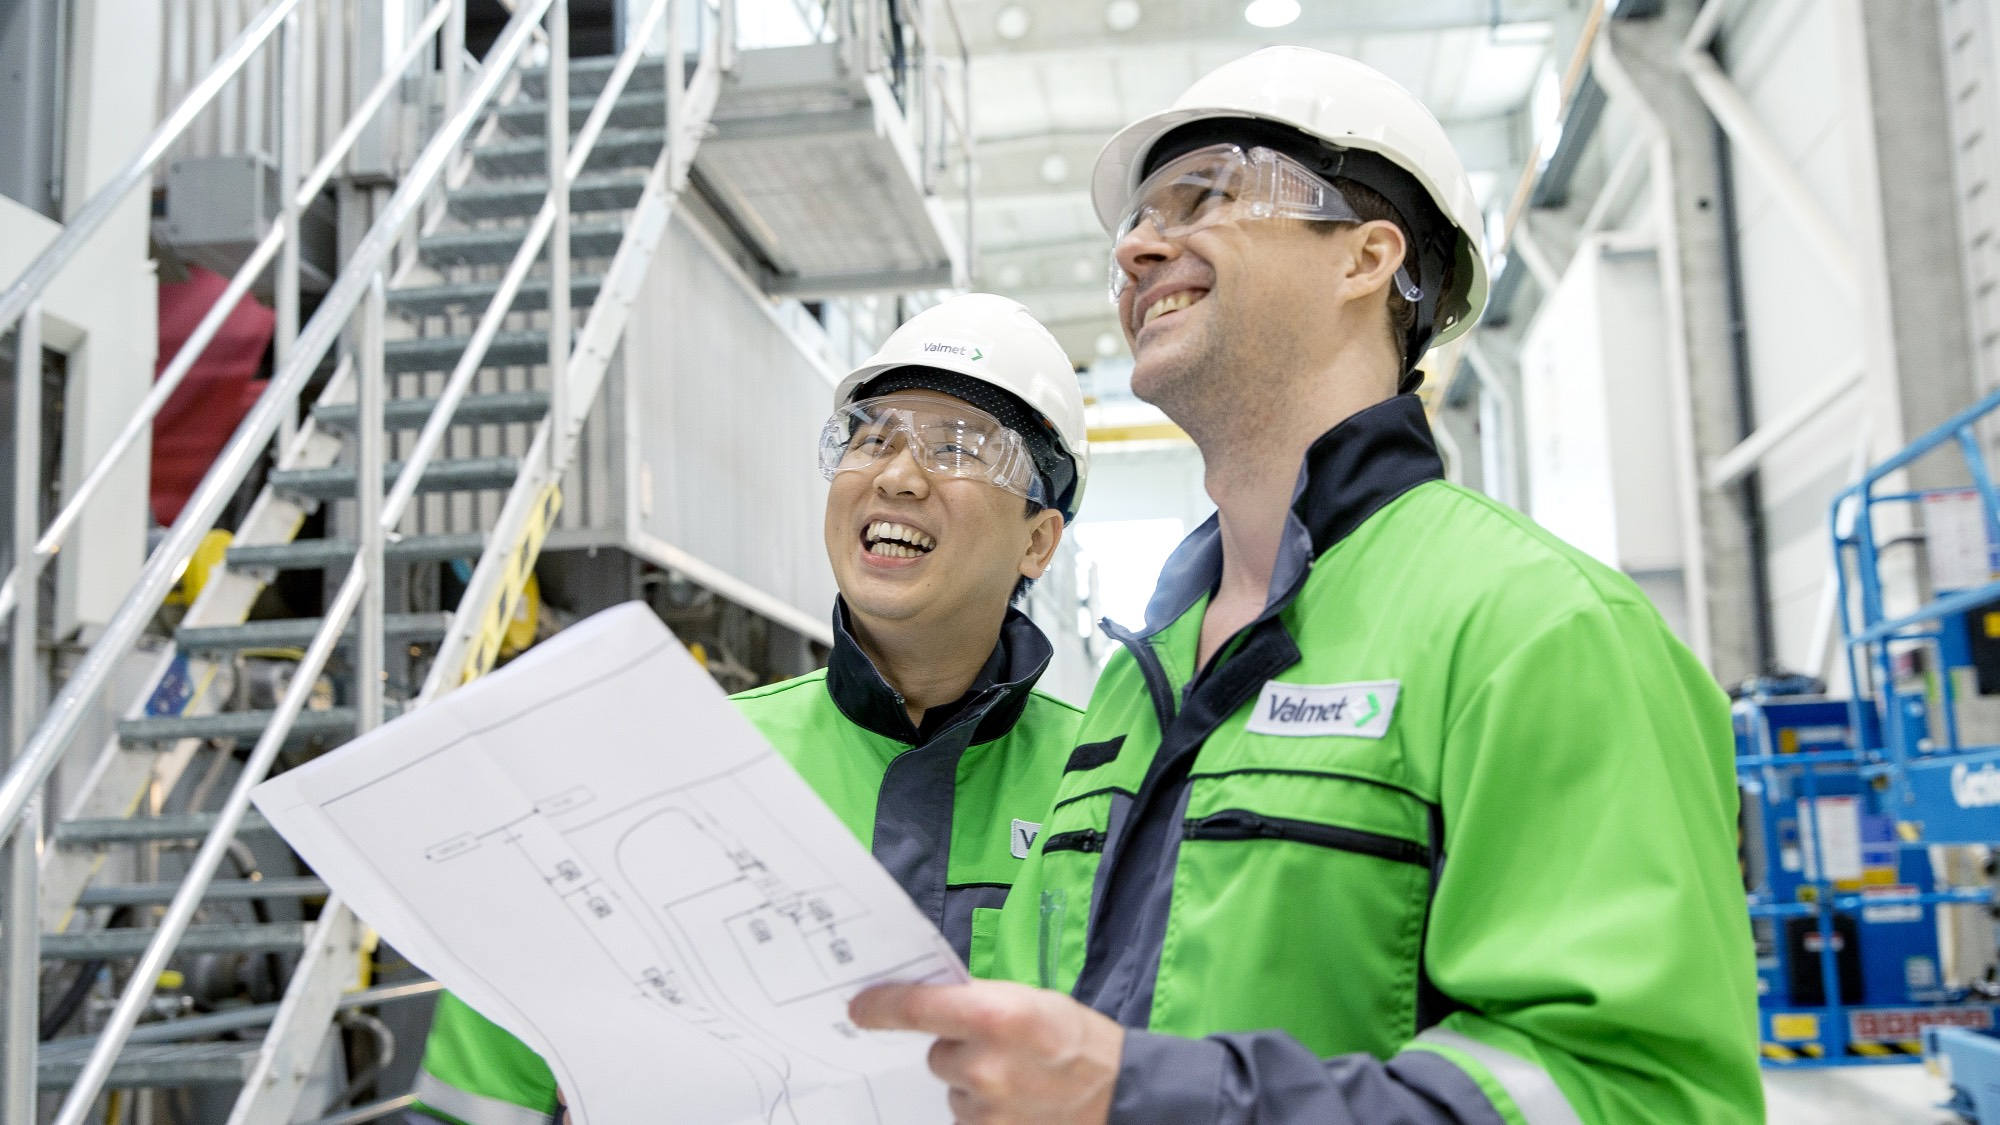 Valmet workers looking at a blueprint